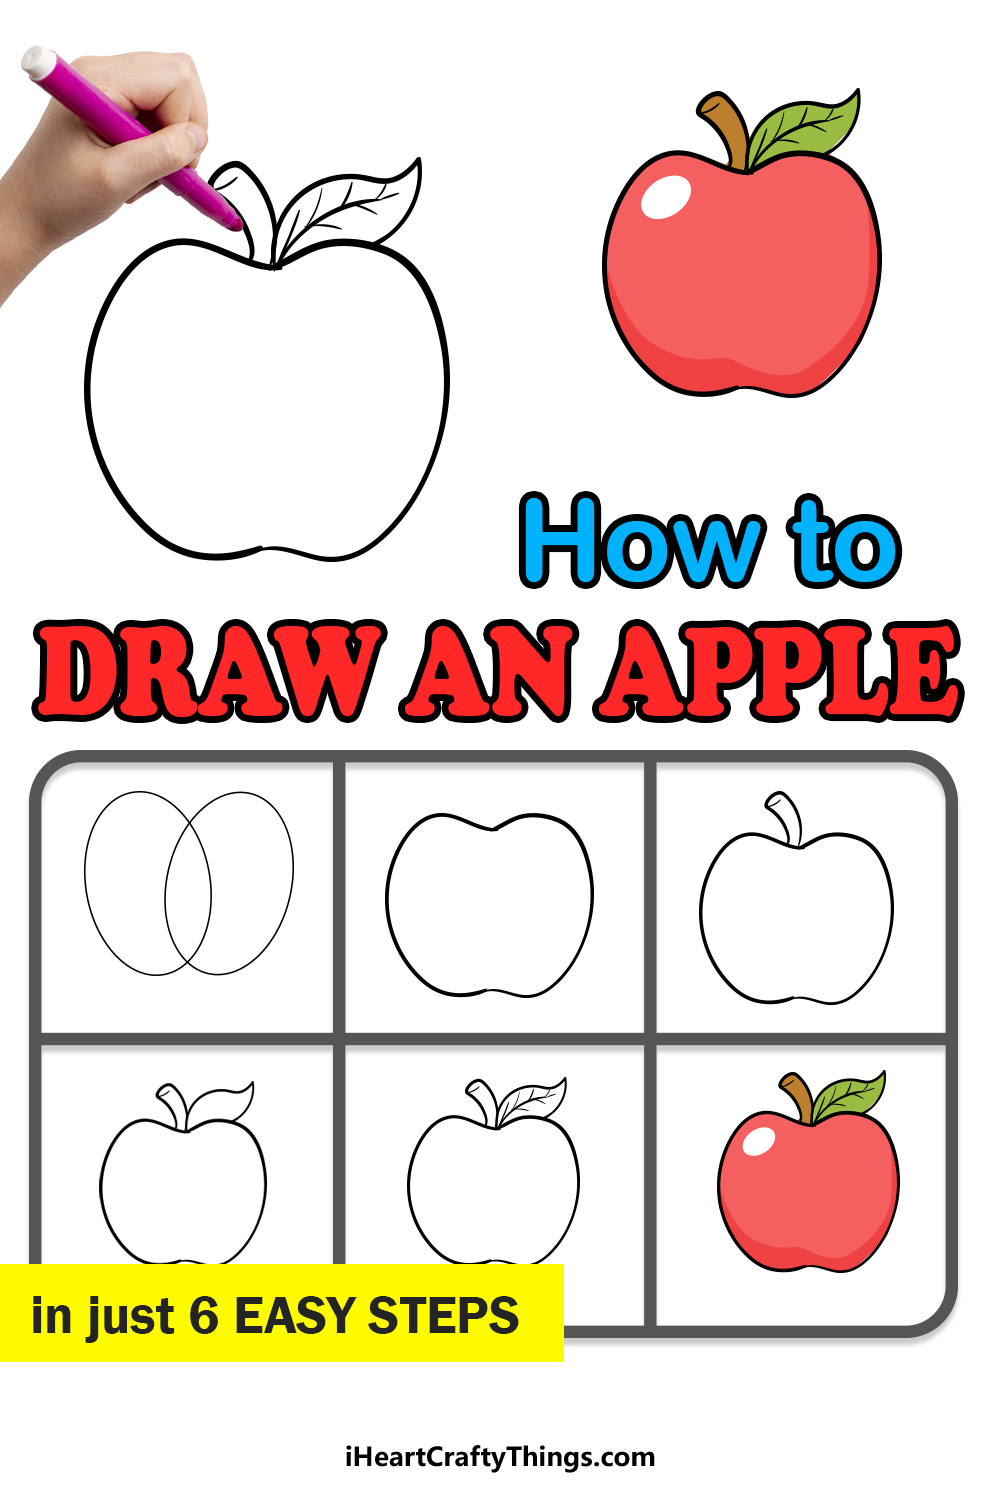 how to draw an apple in 6 easy steps